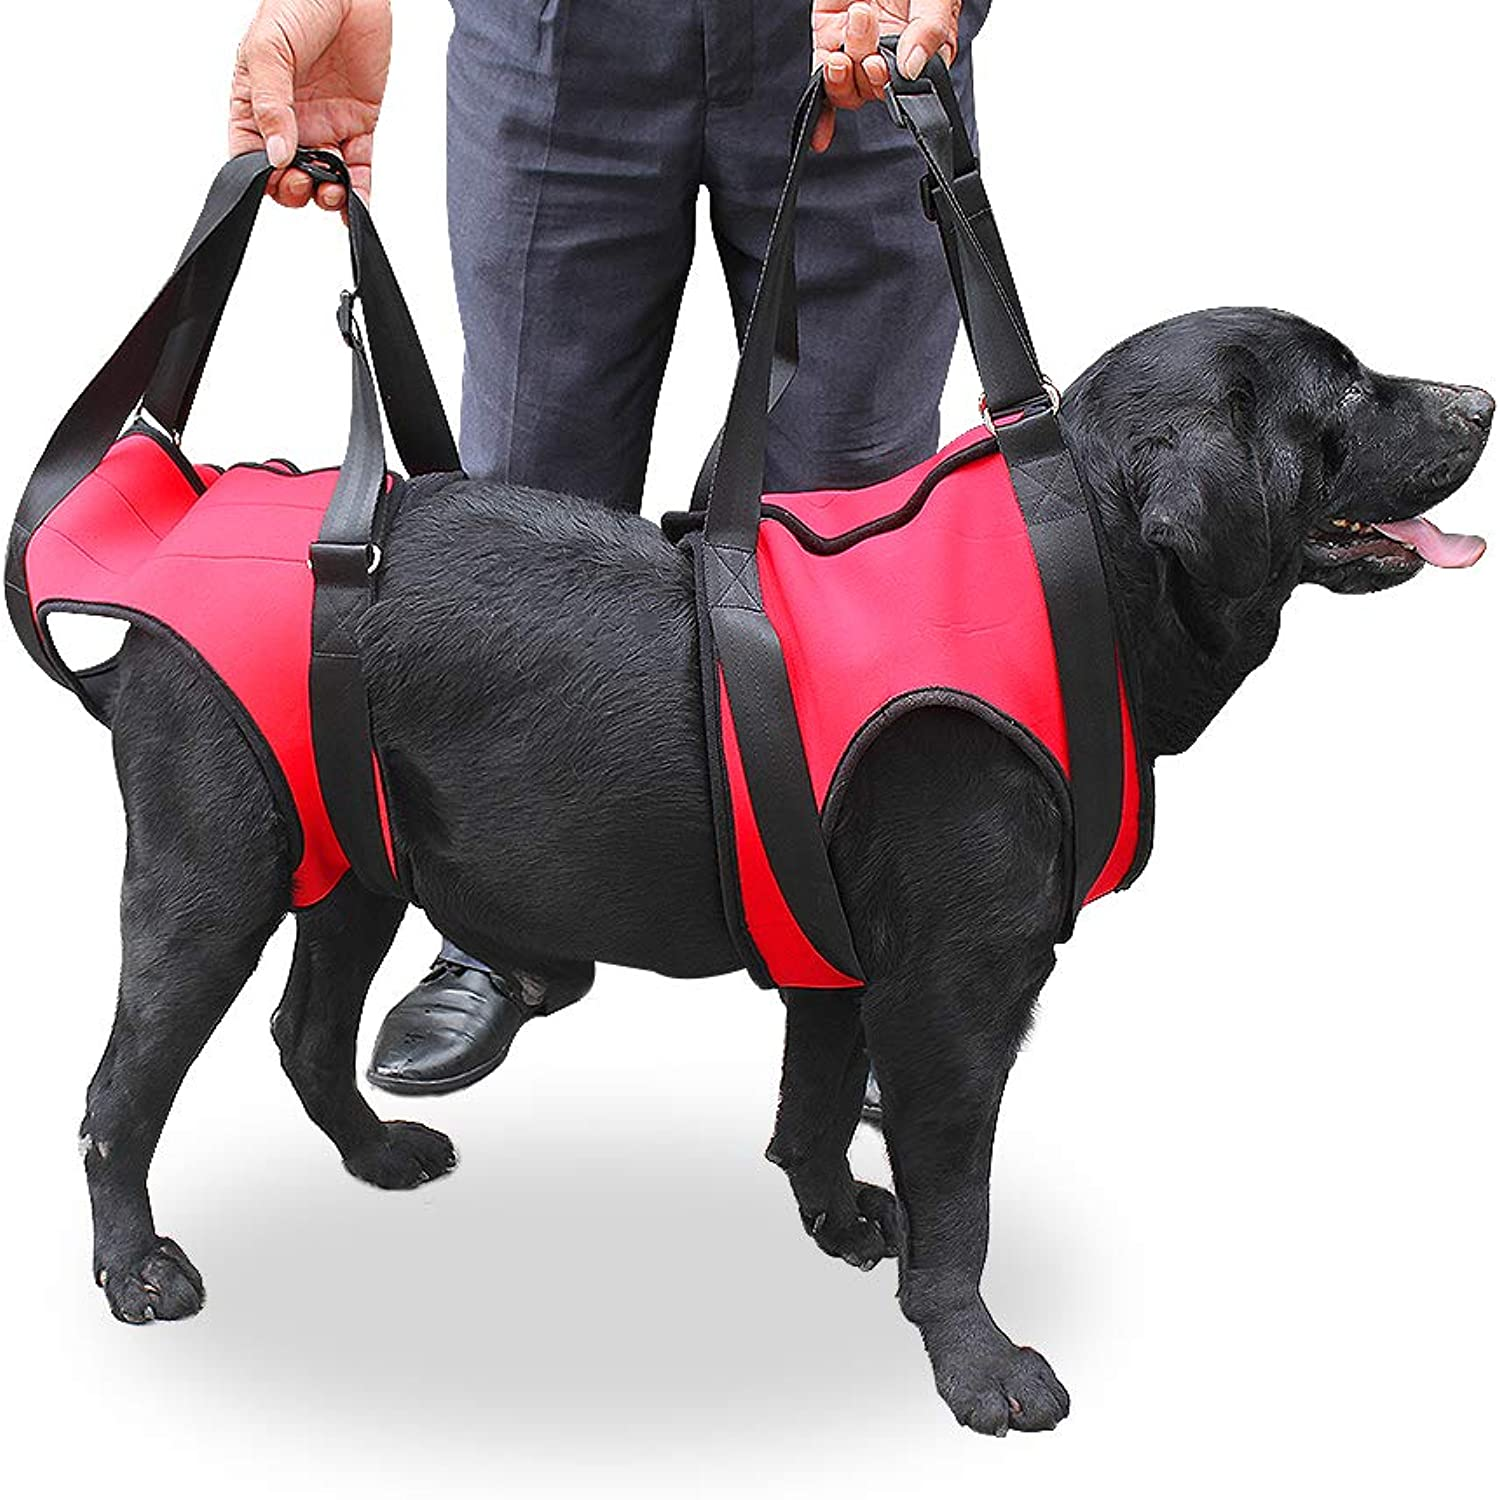 FastEngle Portable Dog Lift Support Harness Dog Auxiliary Belt with Handle for Canine aid Dog Rehabilitation Harness Assist Sling Helps Medium and Large Dog Pet to Go Up Down Stairs, (S, Red)